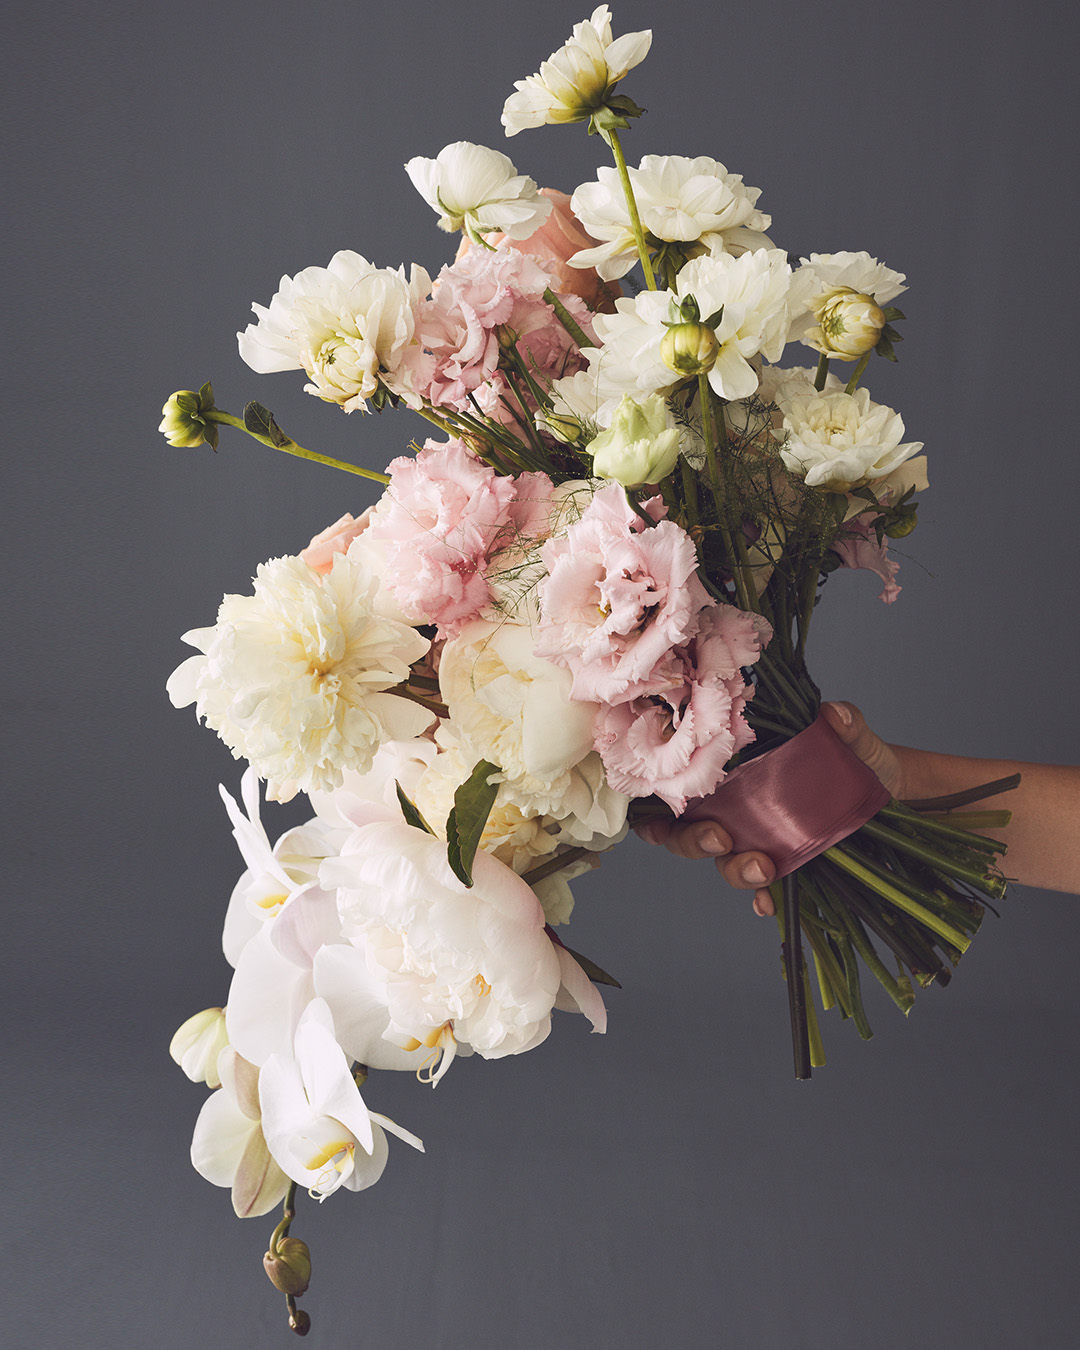 Affordable Wedding Flowers That Look Expensive